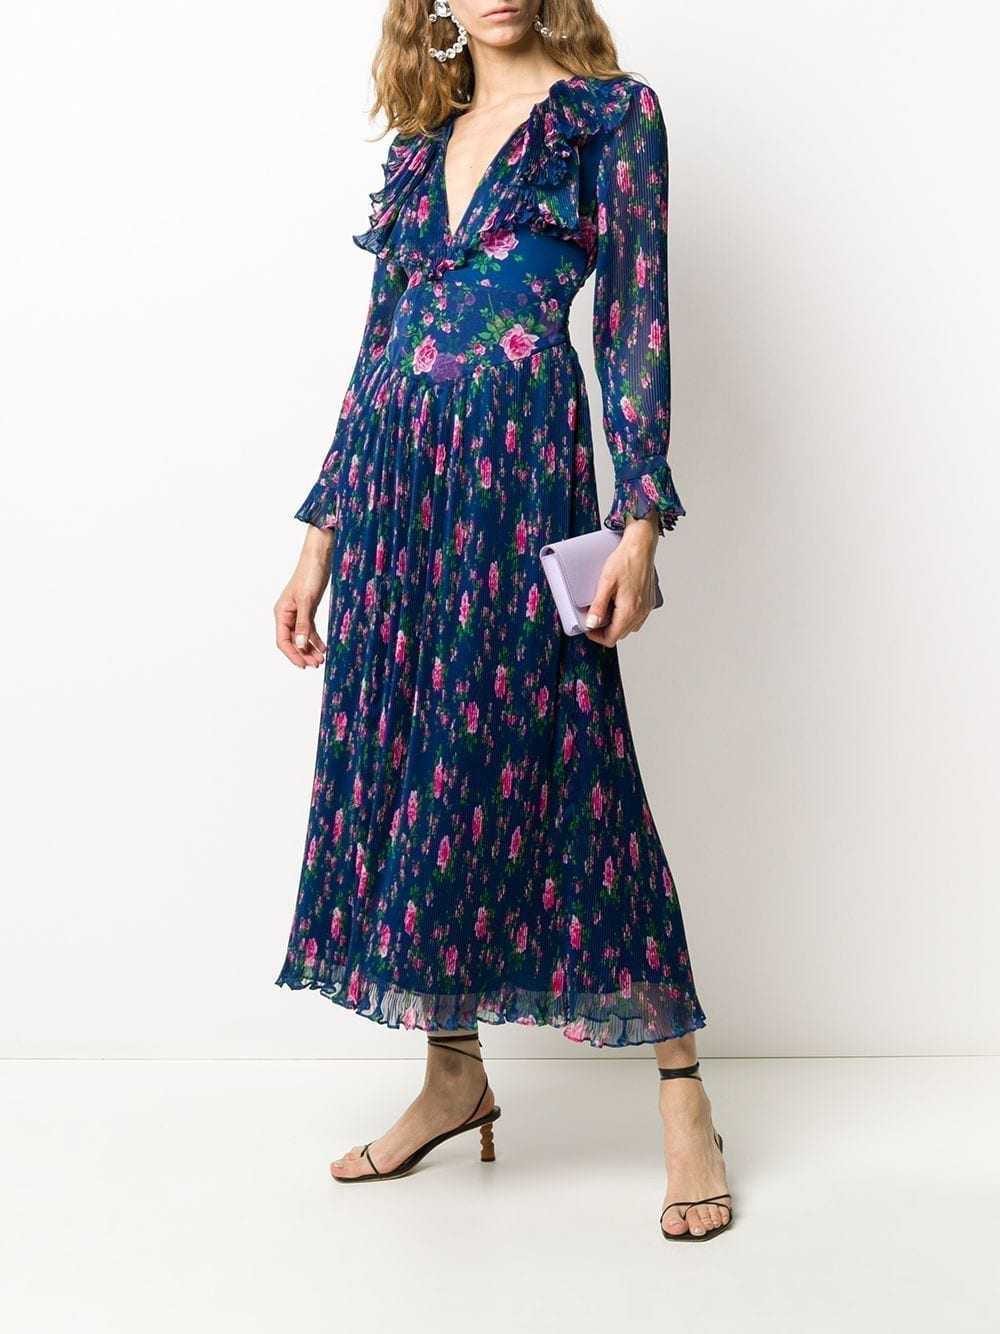 PHILOSOPHY DI LORENZO SERAFINI Floral Print Pleated Dress